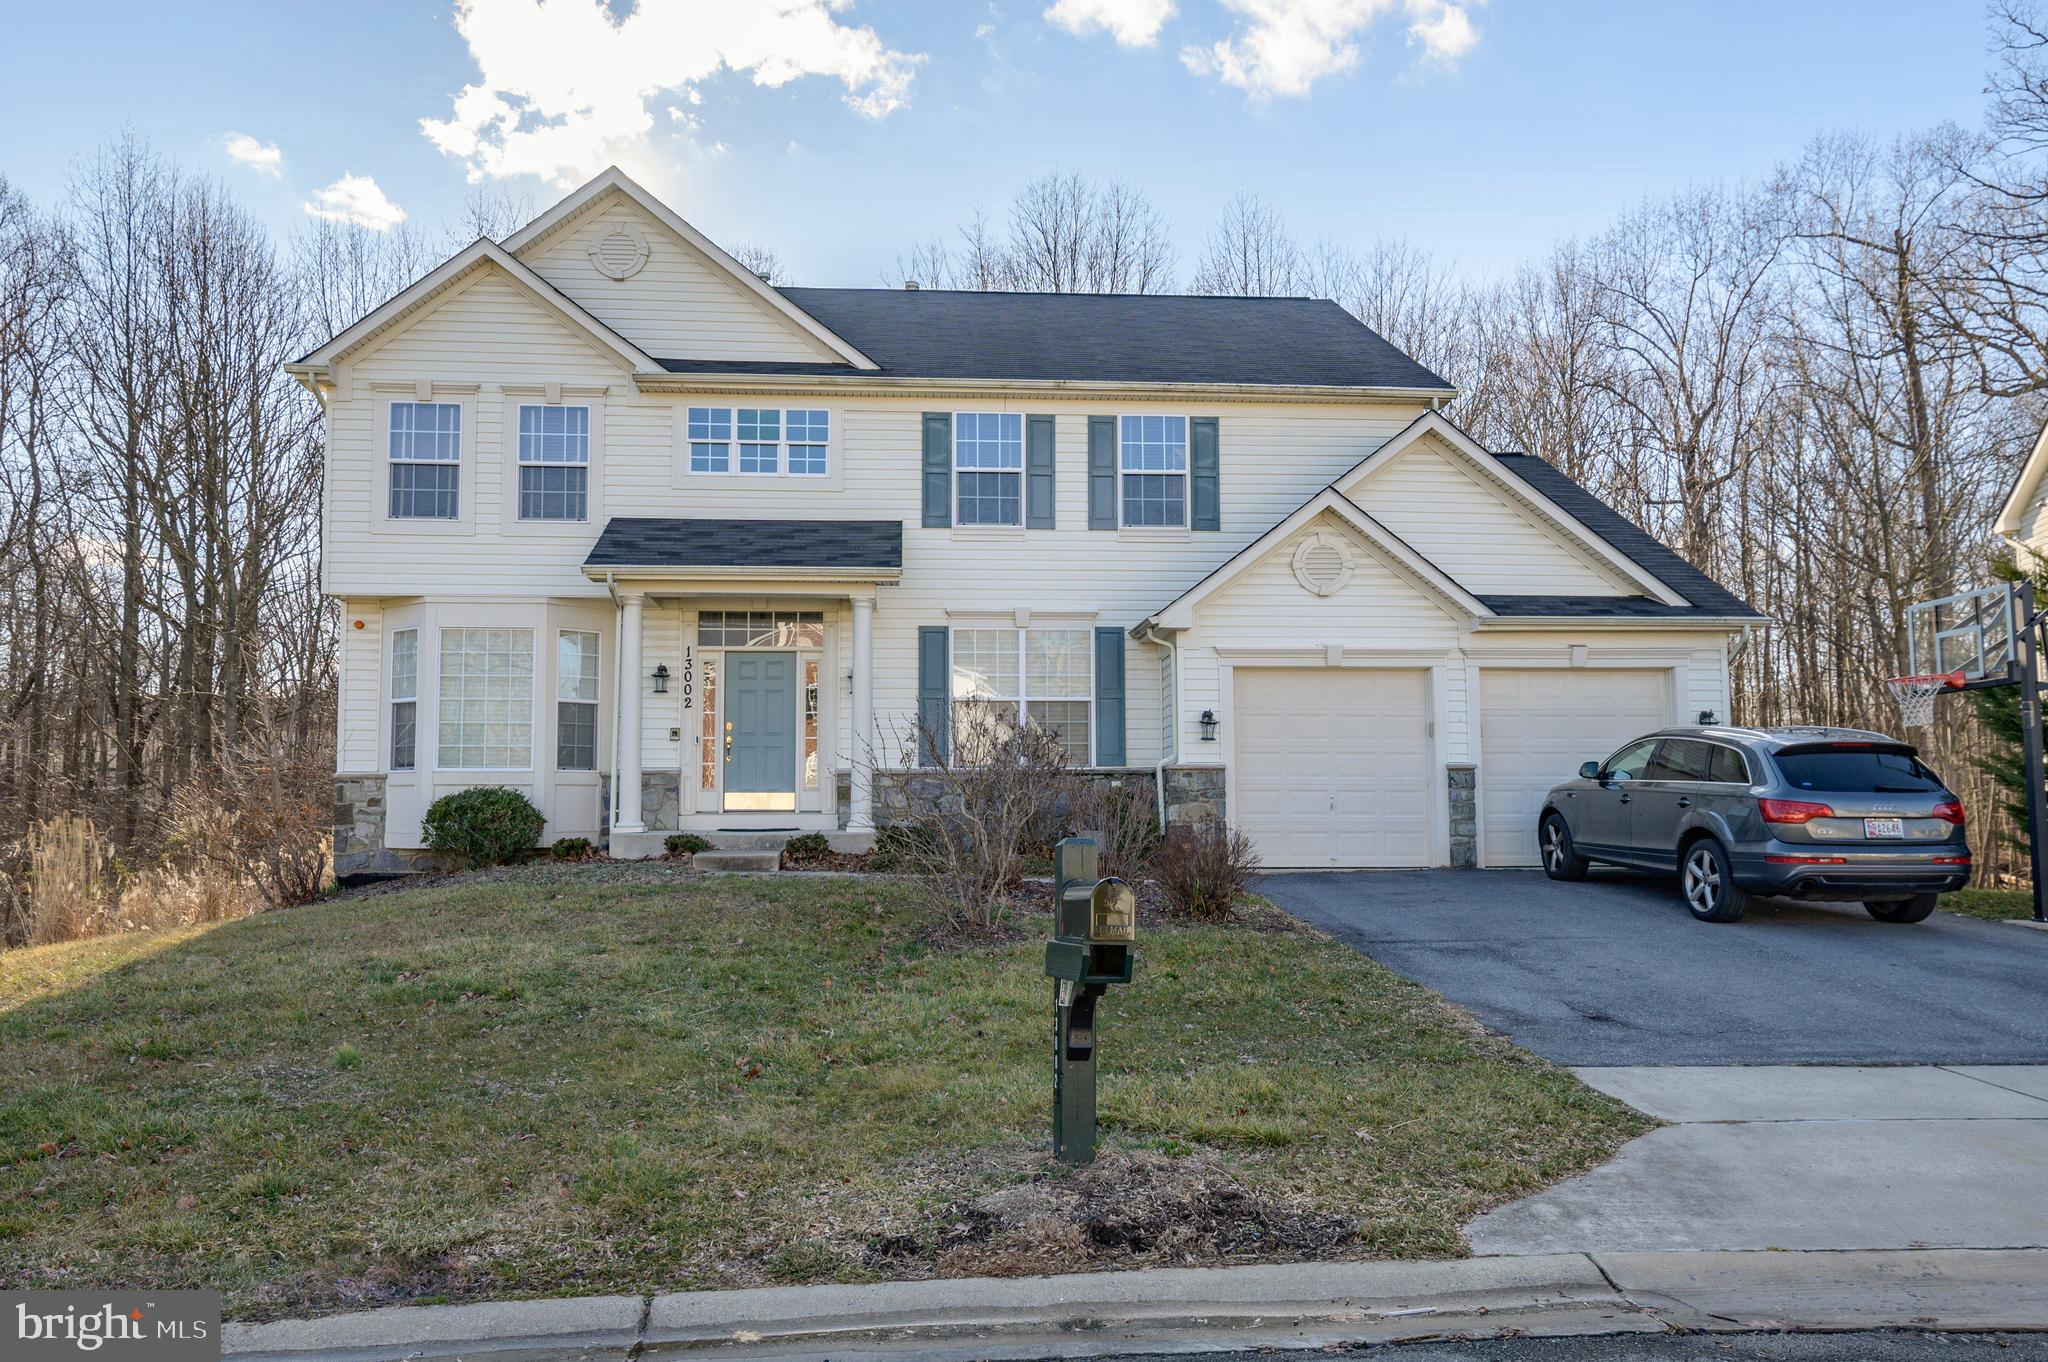 13002 ALPENHORN WAY, SILVER SPRING, MD 20904